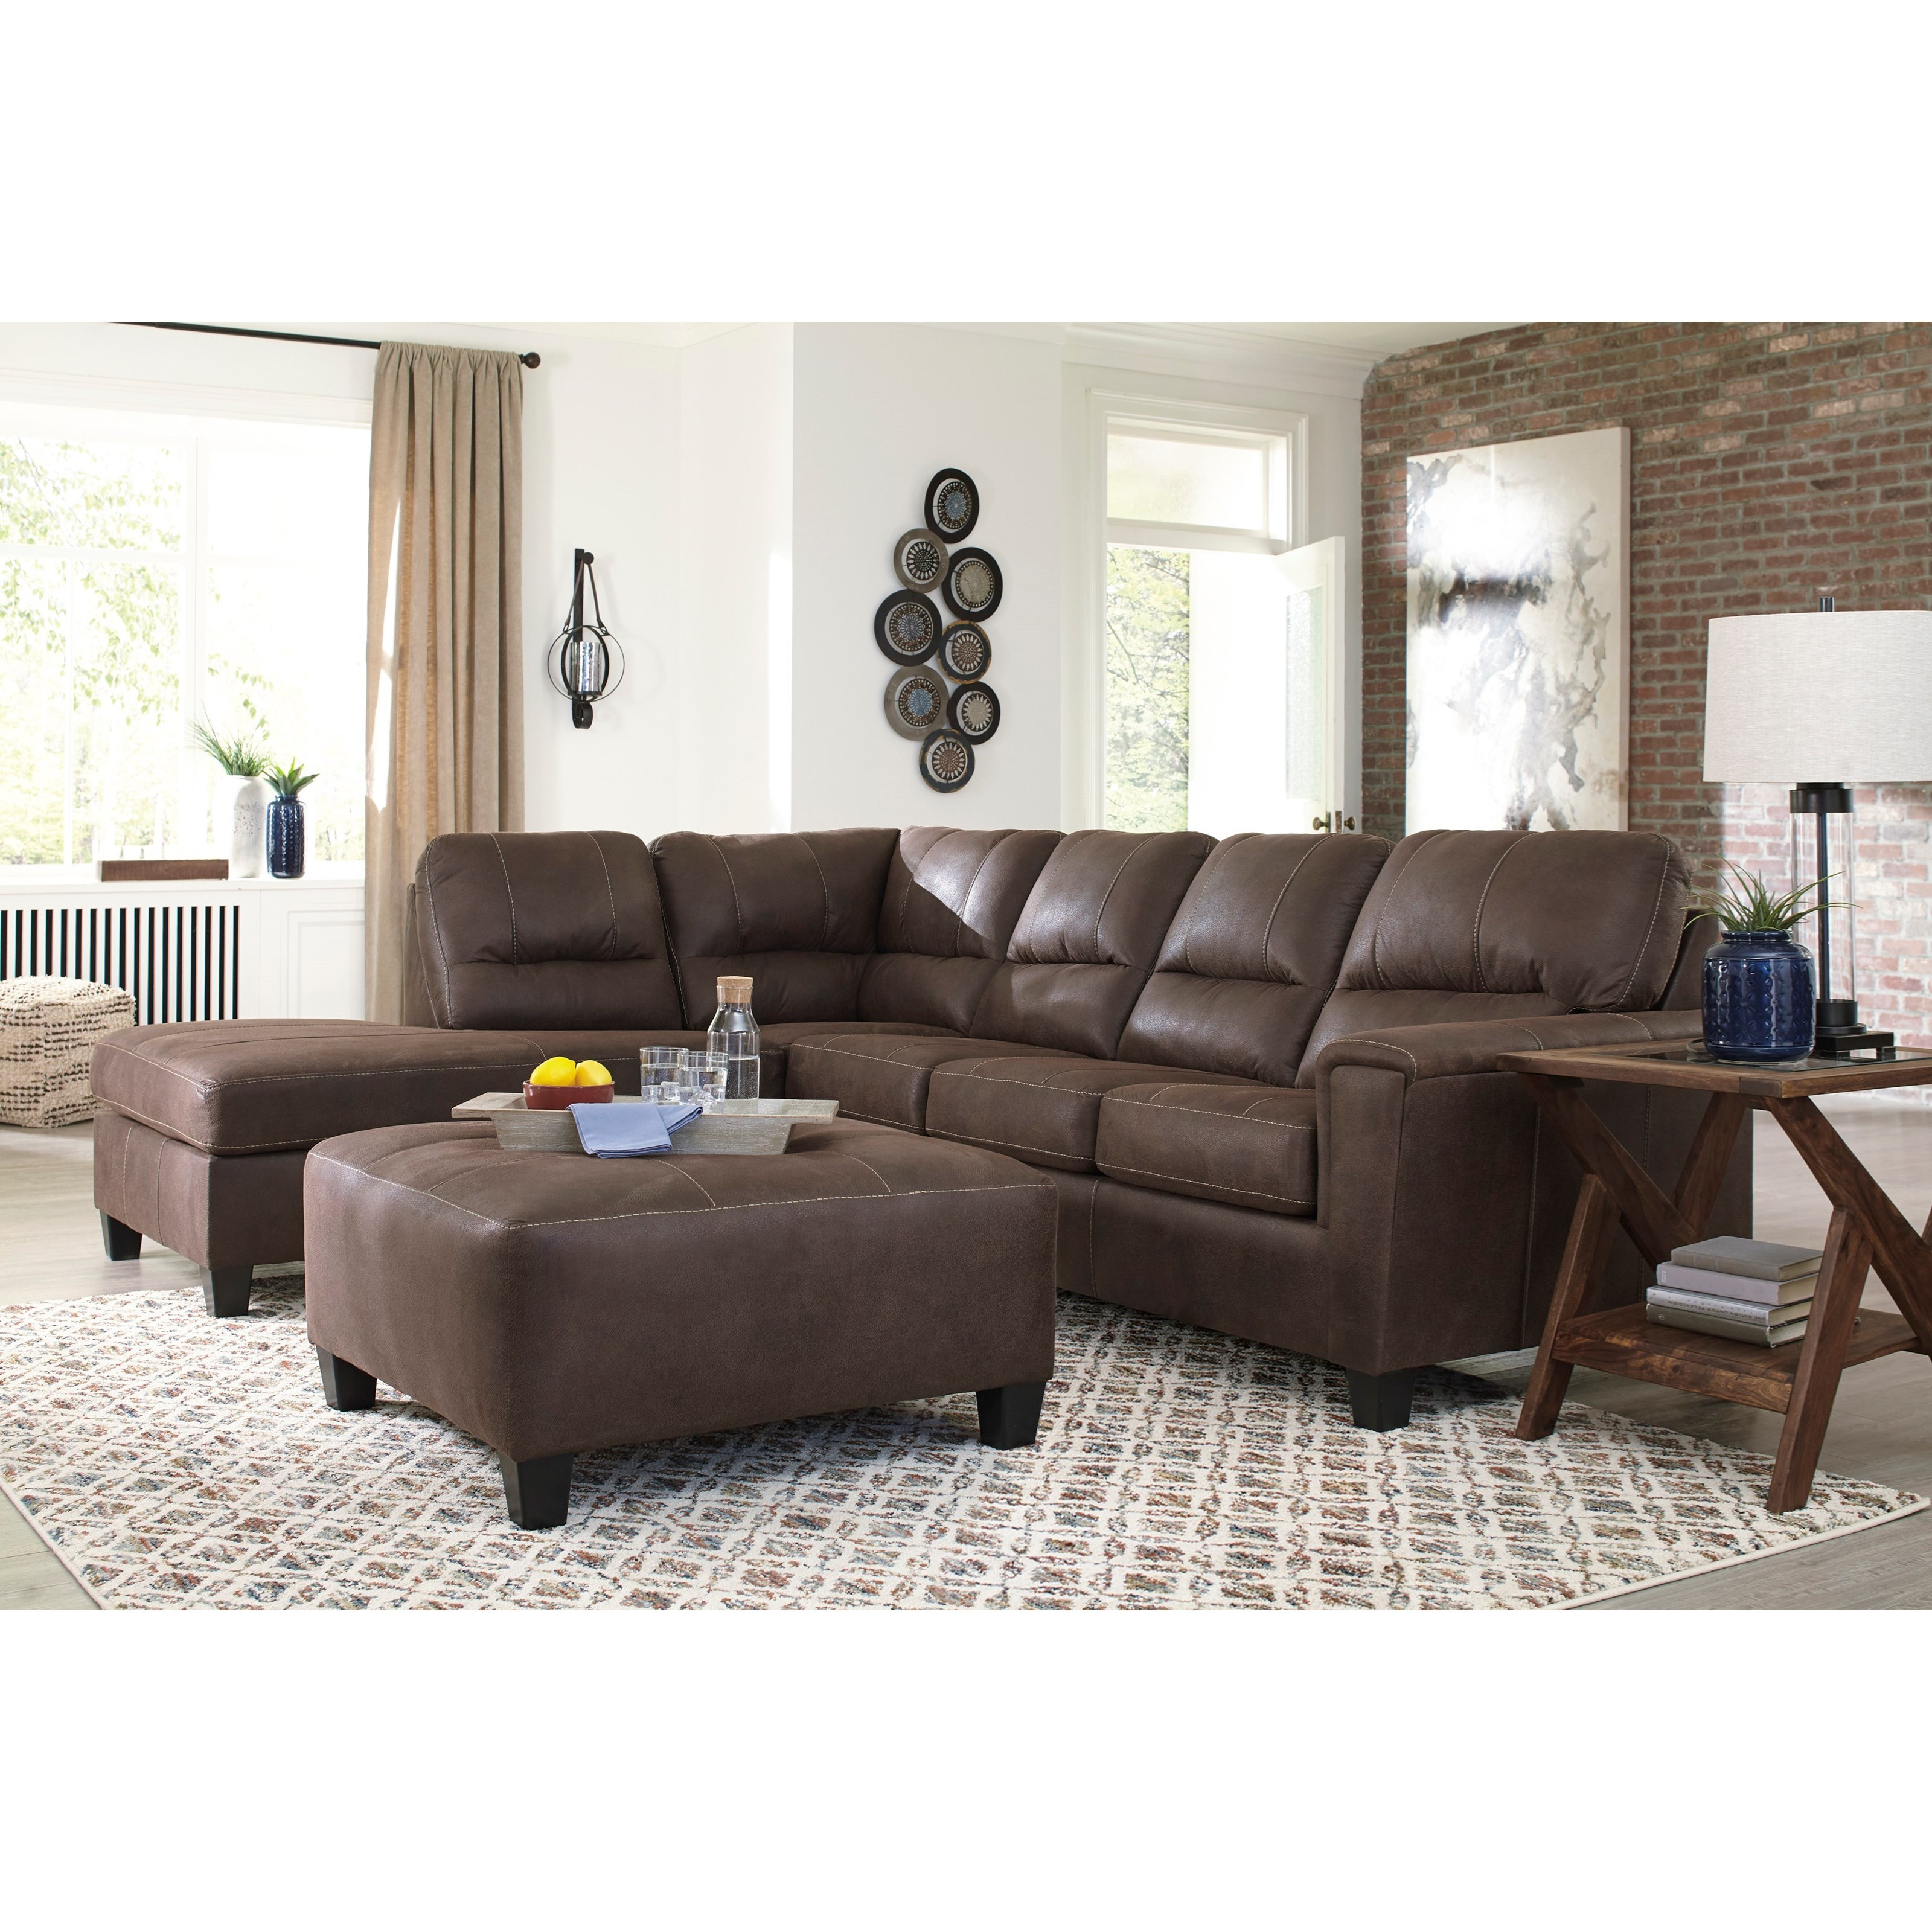 Navi Living Room Group by Ashley (Signature Design) at Johnny Janosik